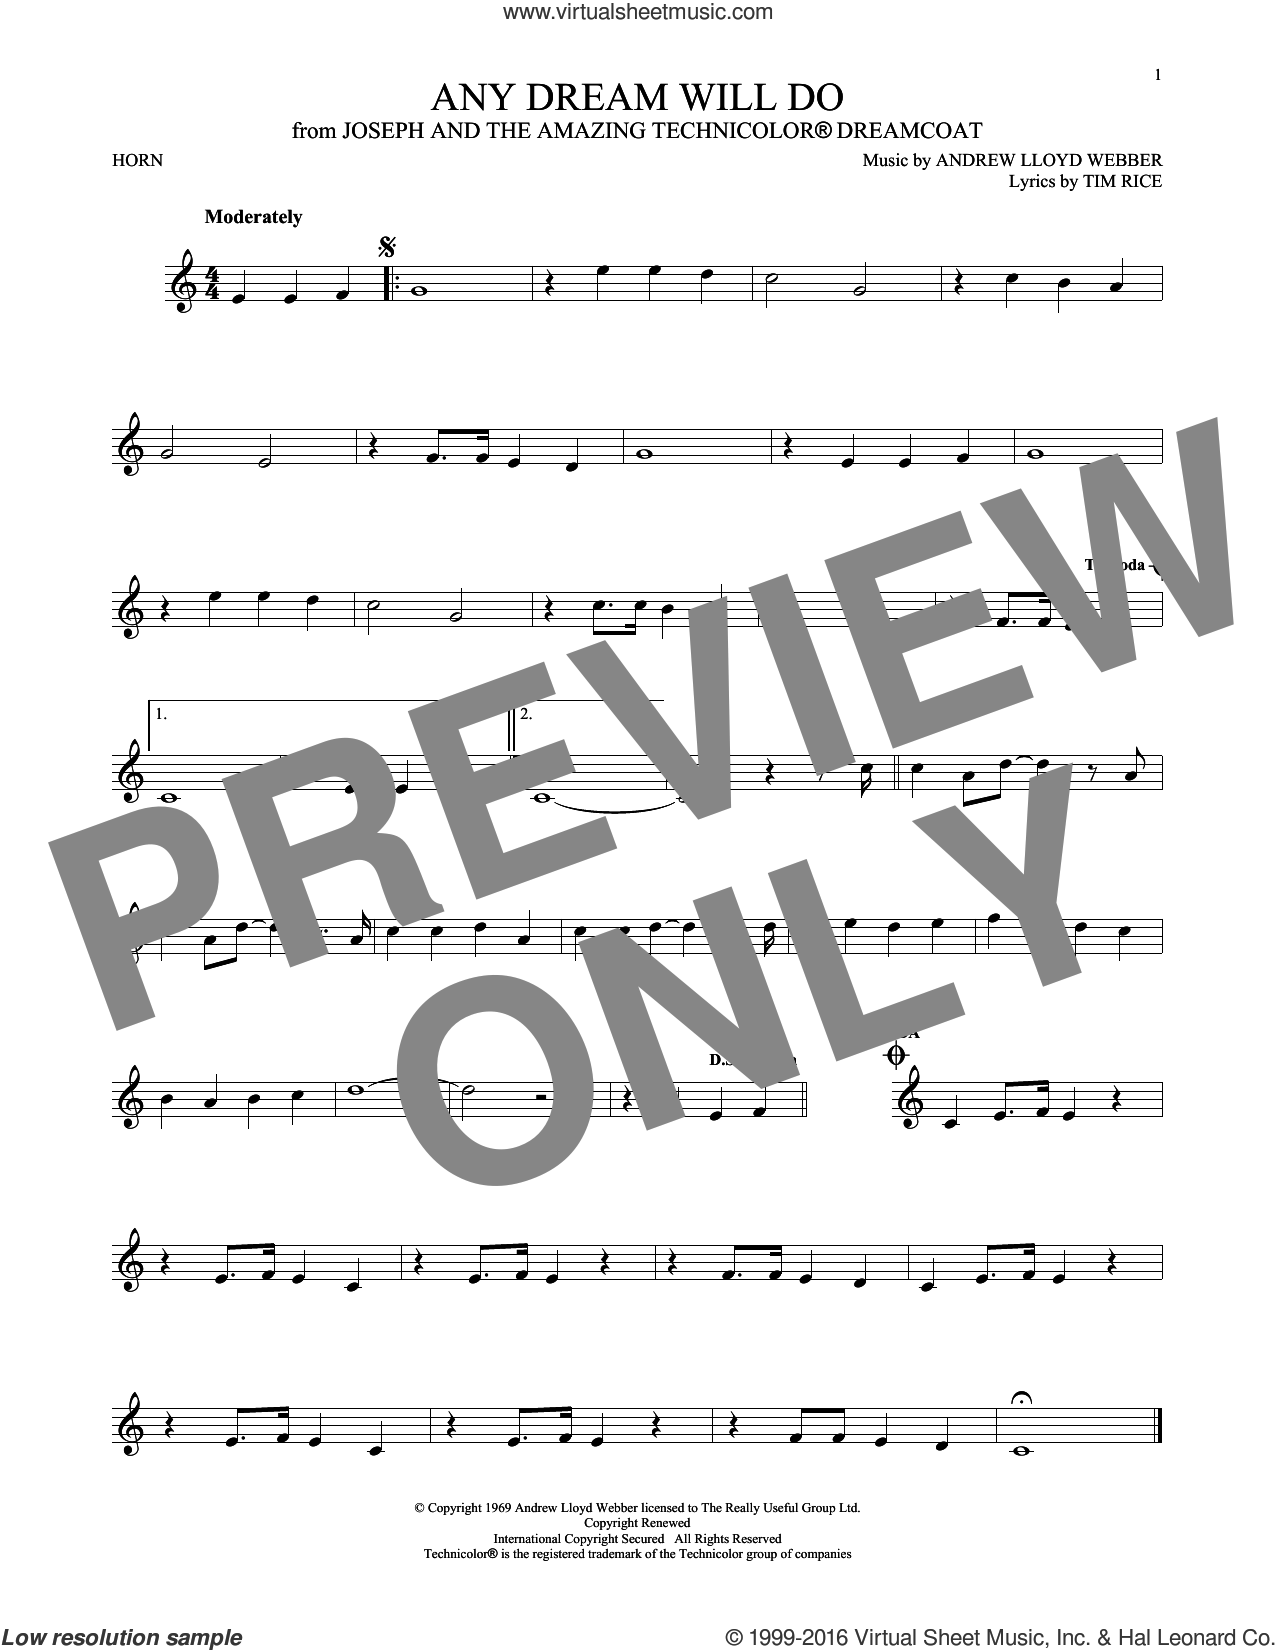 Any Dream Will Do sheet music for horn solo by Andrew Lloyd Webber, Andrew Lloyd Webber & Tim Rice and Tim Rice, intermediate skill level